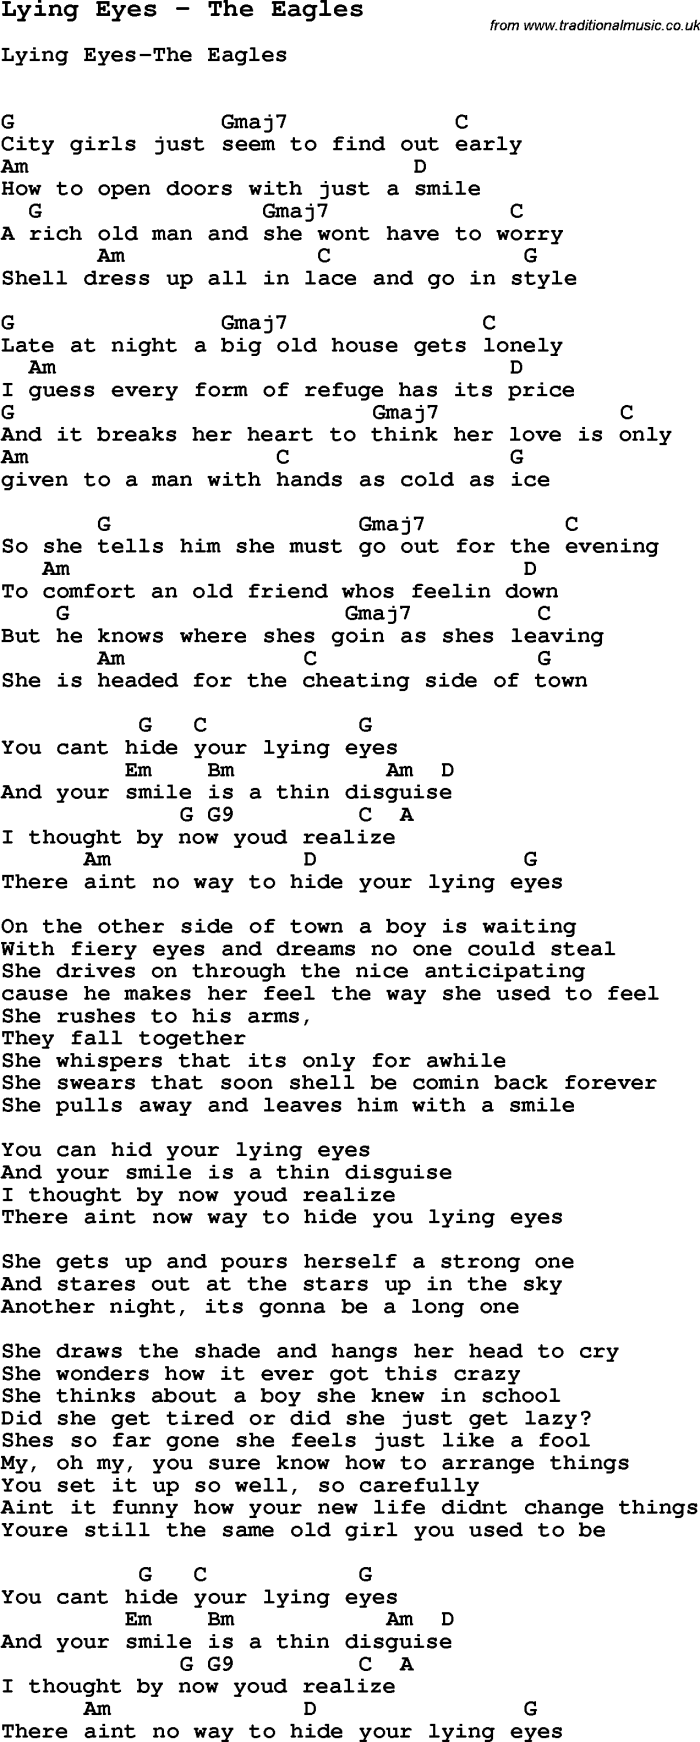 Glenn Frey S Greatest Eagles Song Lyin Eyes The True Story Guitar Chords For Songs Lyrics And Chords Guitar Songs